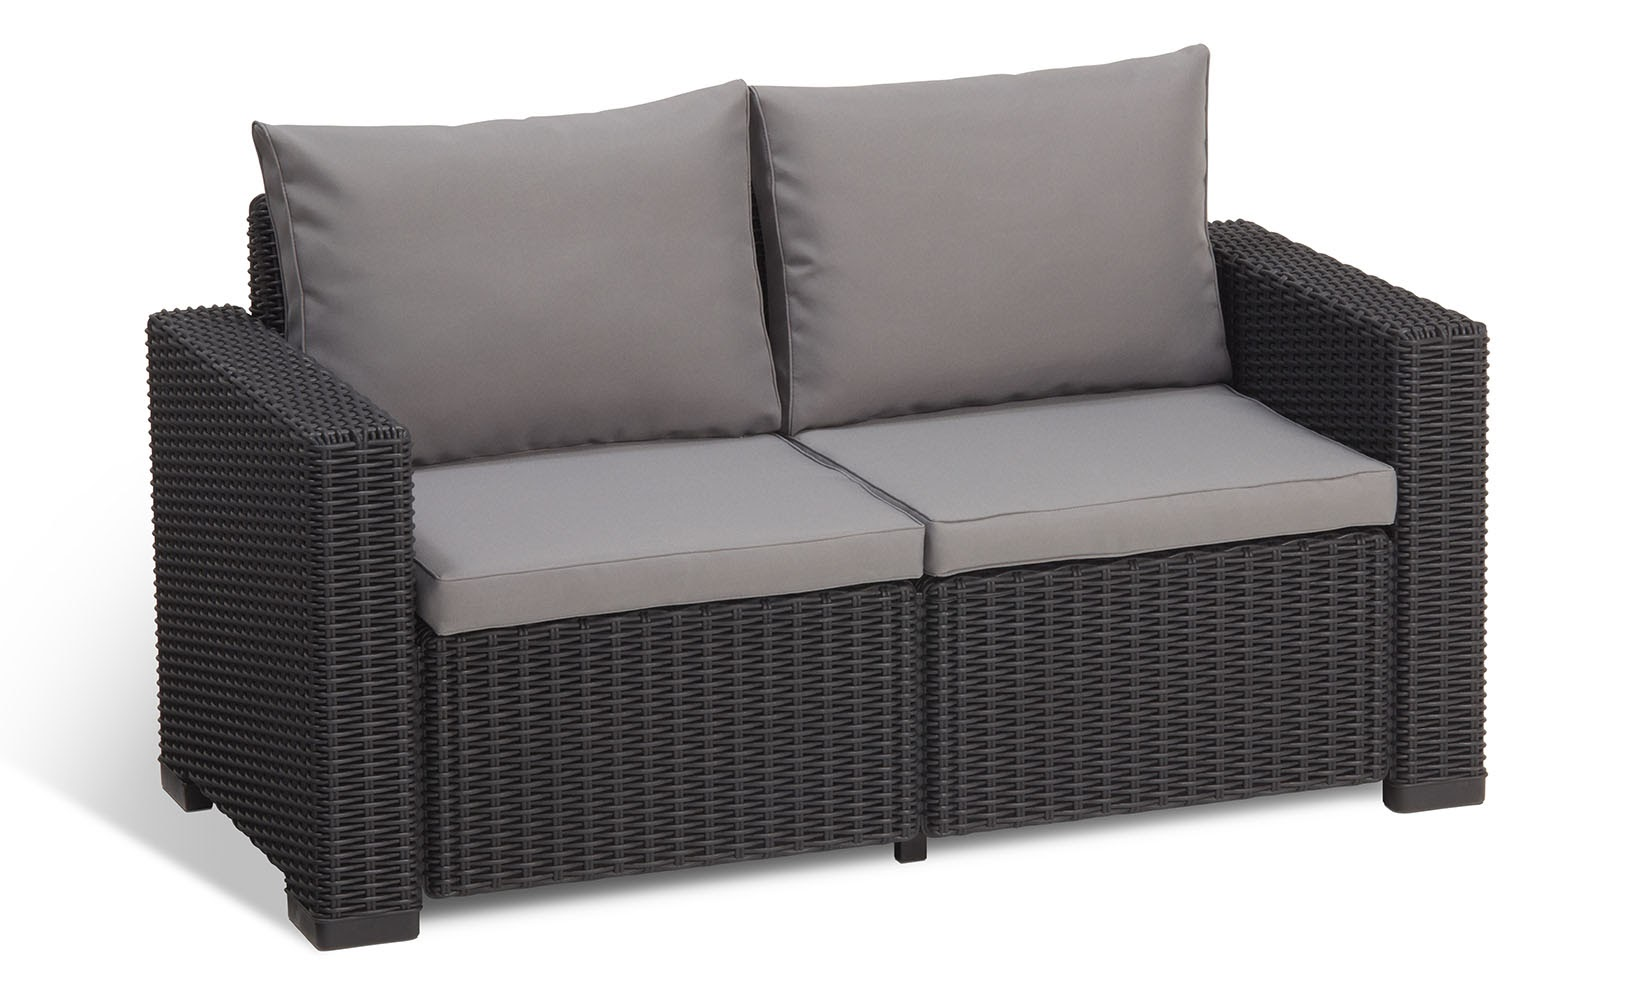 Gentil Keter California 2 Seater Outdoor Seating Patio Sofa Loveseat In Resin  Plastic Rattan/Wicker With Cushions, Grey   Walmart.com